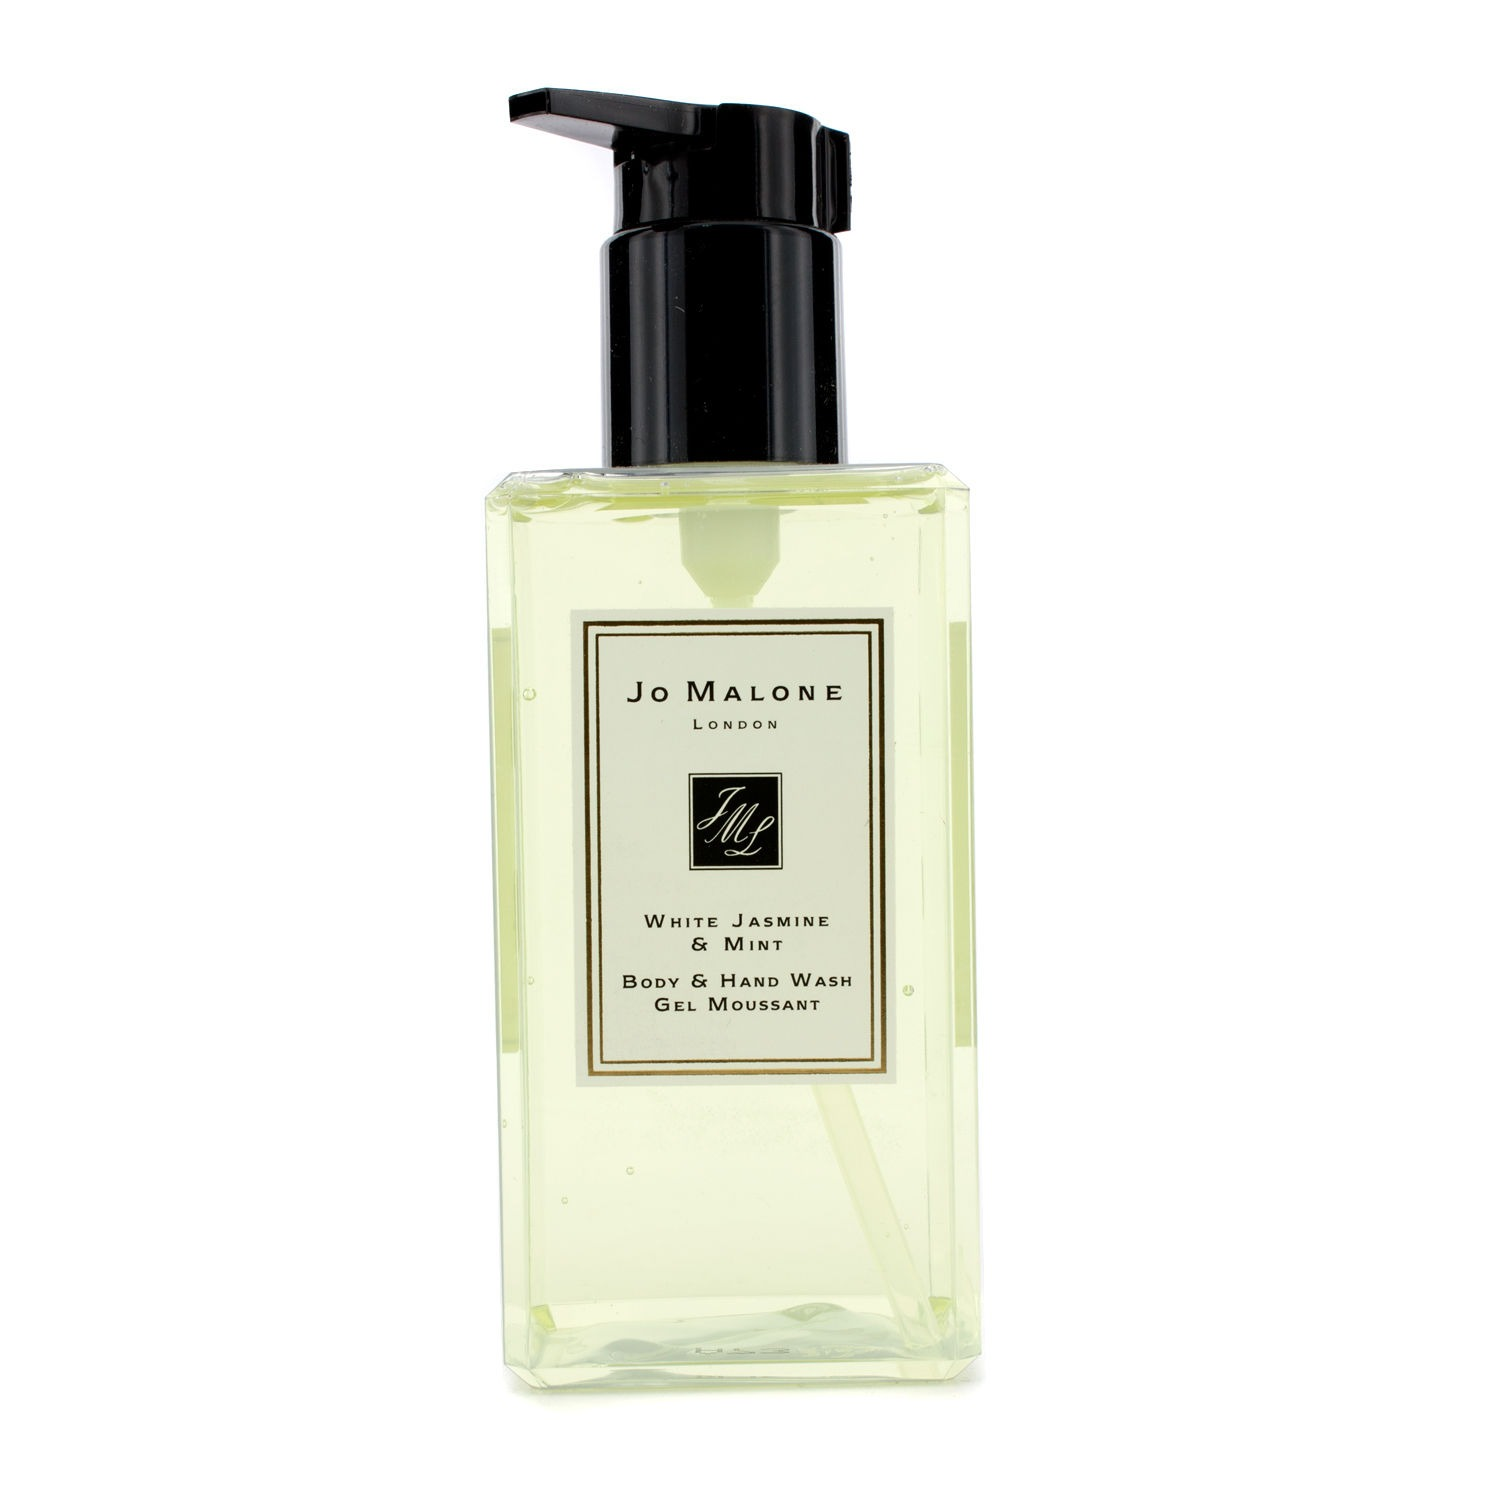 Jo Malone White Jasmine & Mint Body & Hand Wash